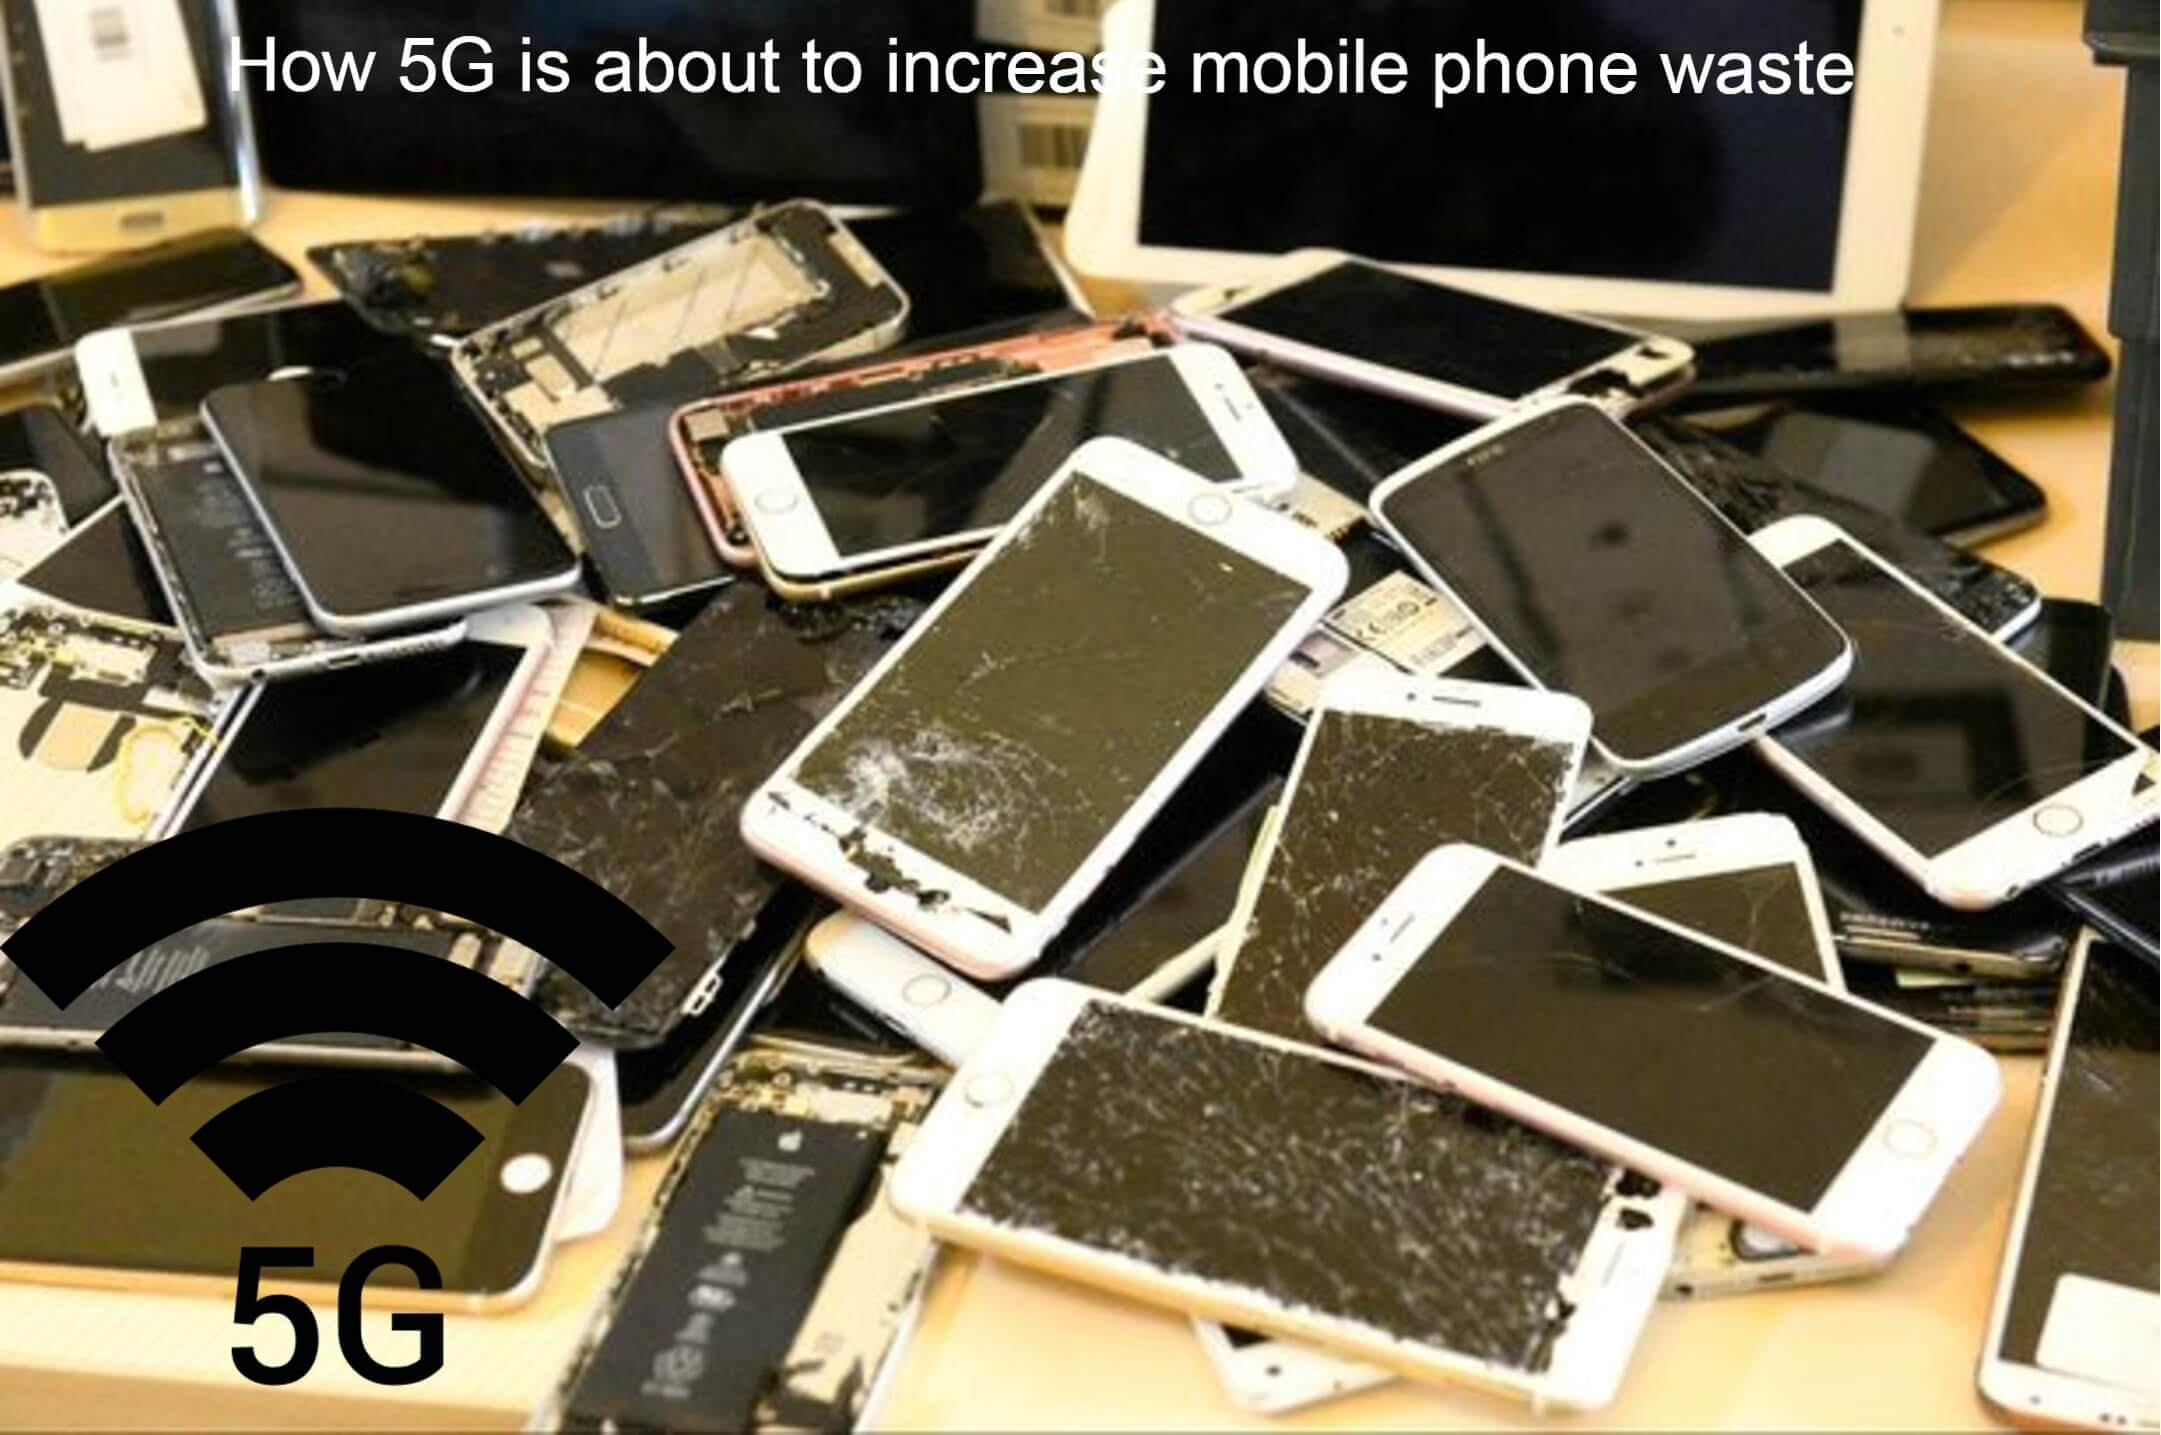 how 5G is about to increase phone waste